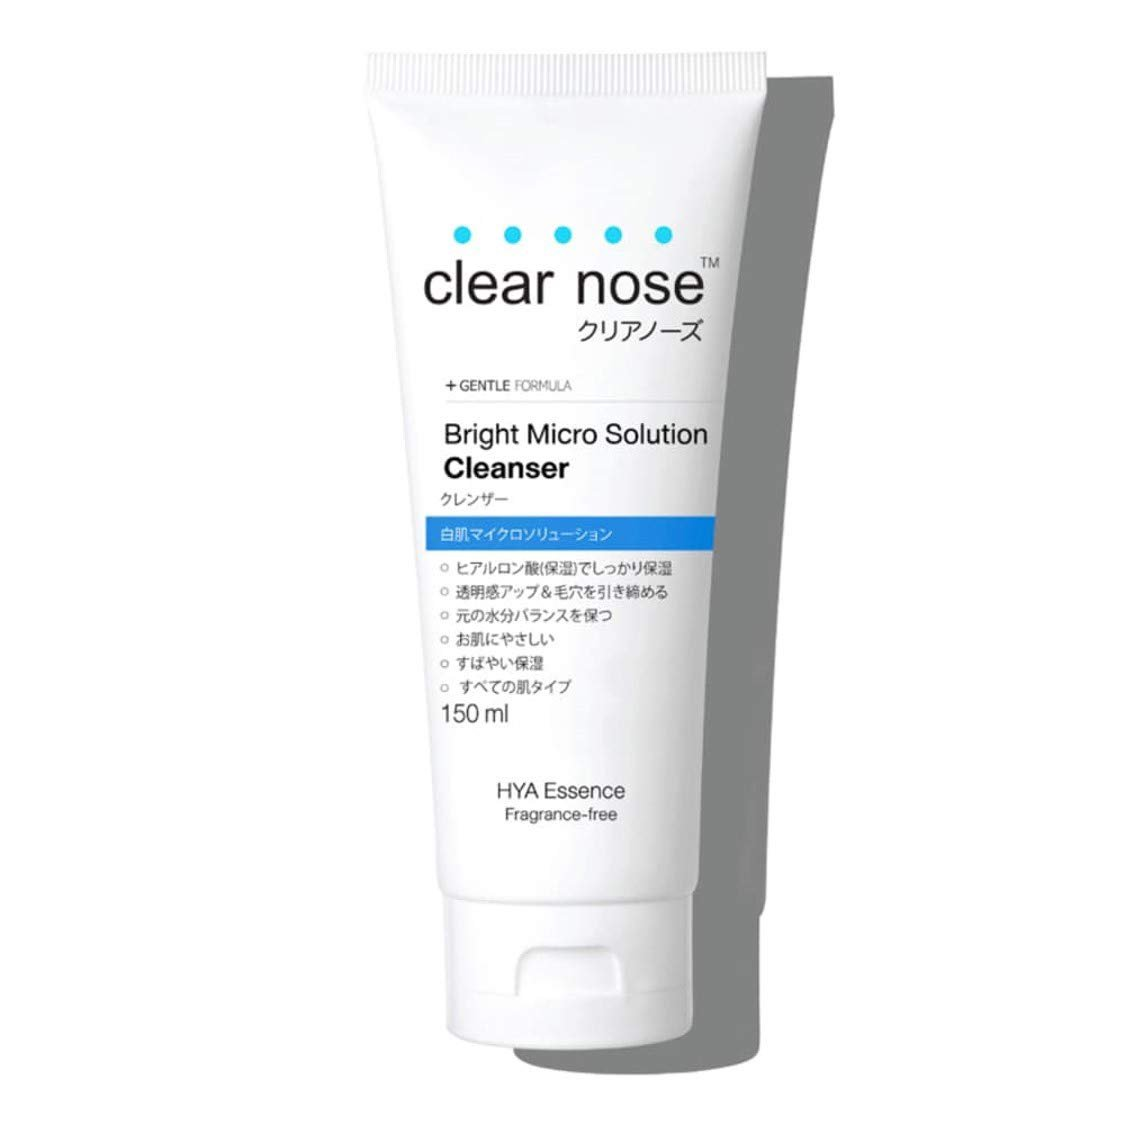 CLEAR NOSE Bright Mirco Solution Cleanser 150 ml. (4 Pack)